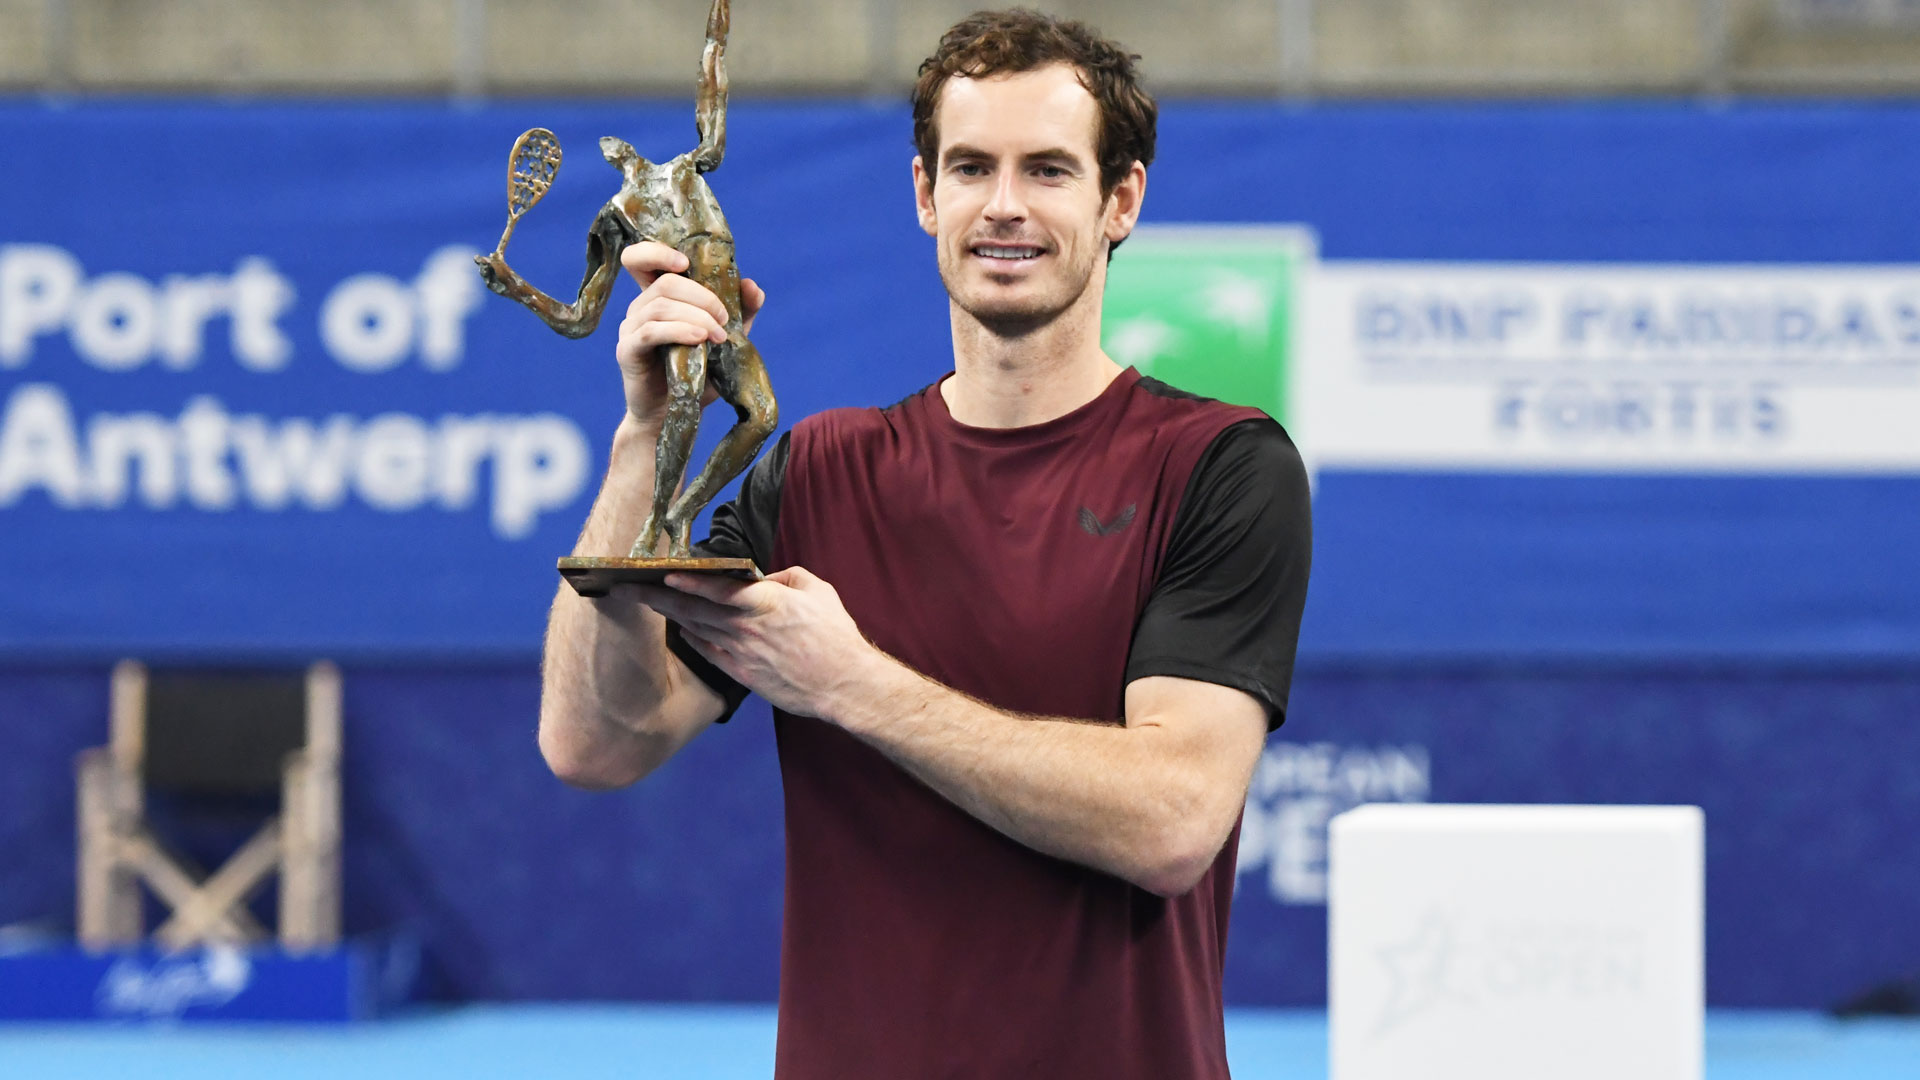 O triunfal retorno de Andy Murray